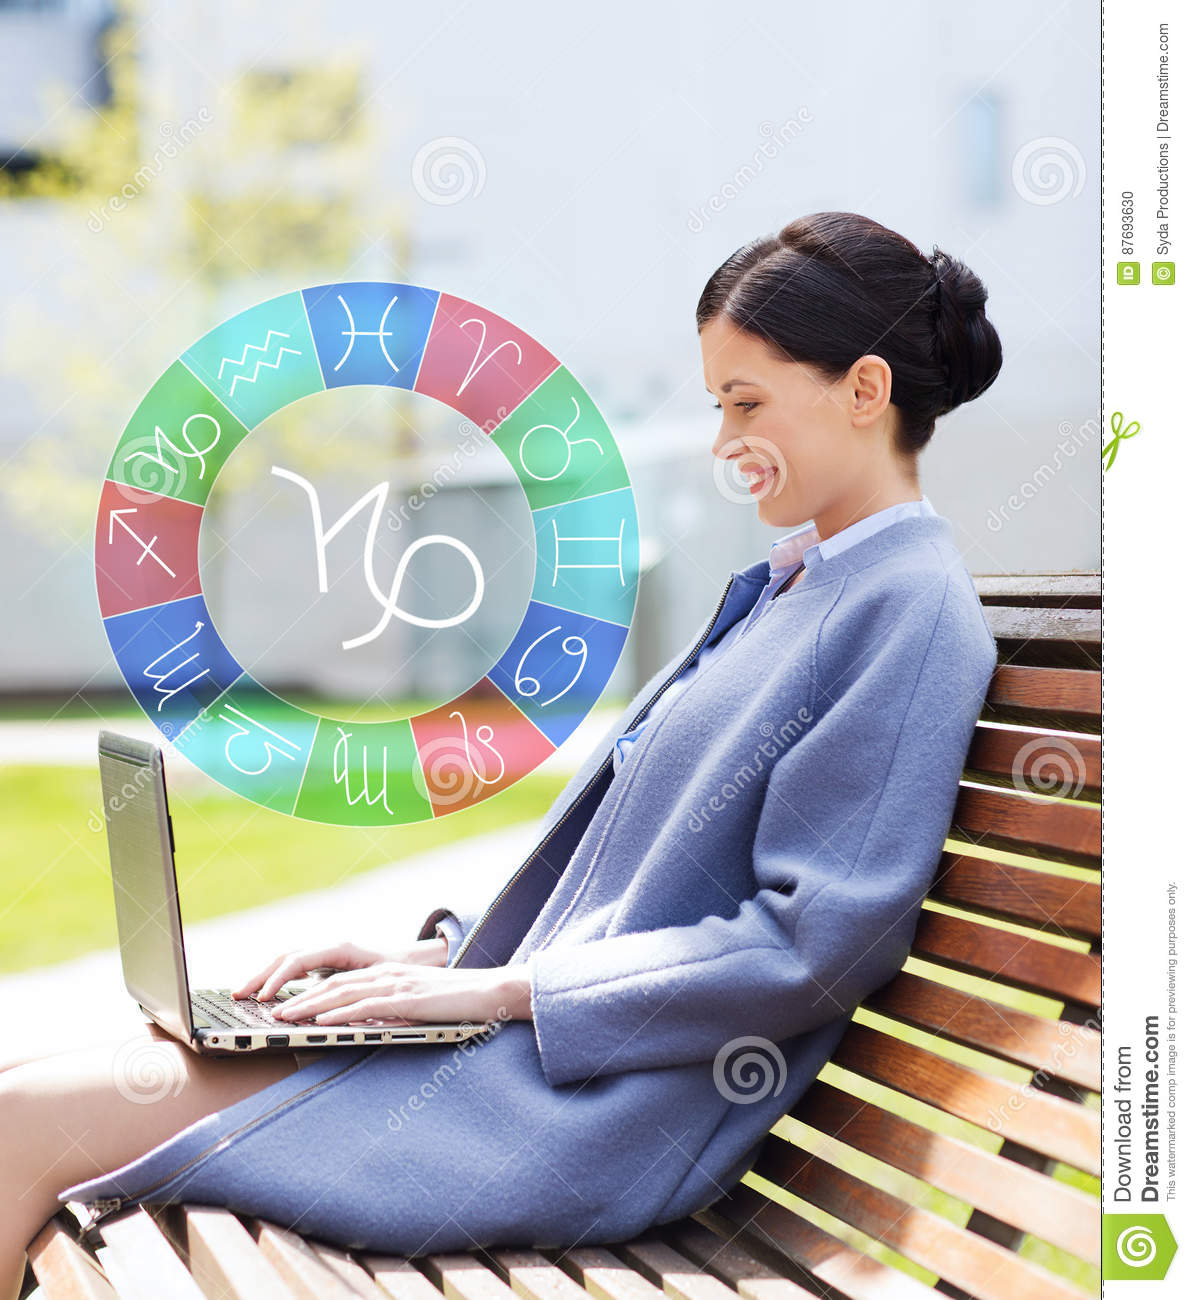 Smiling woman with laptop and zodiac signs in city